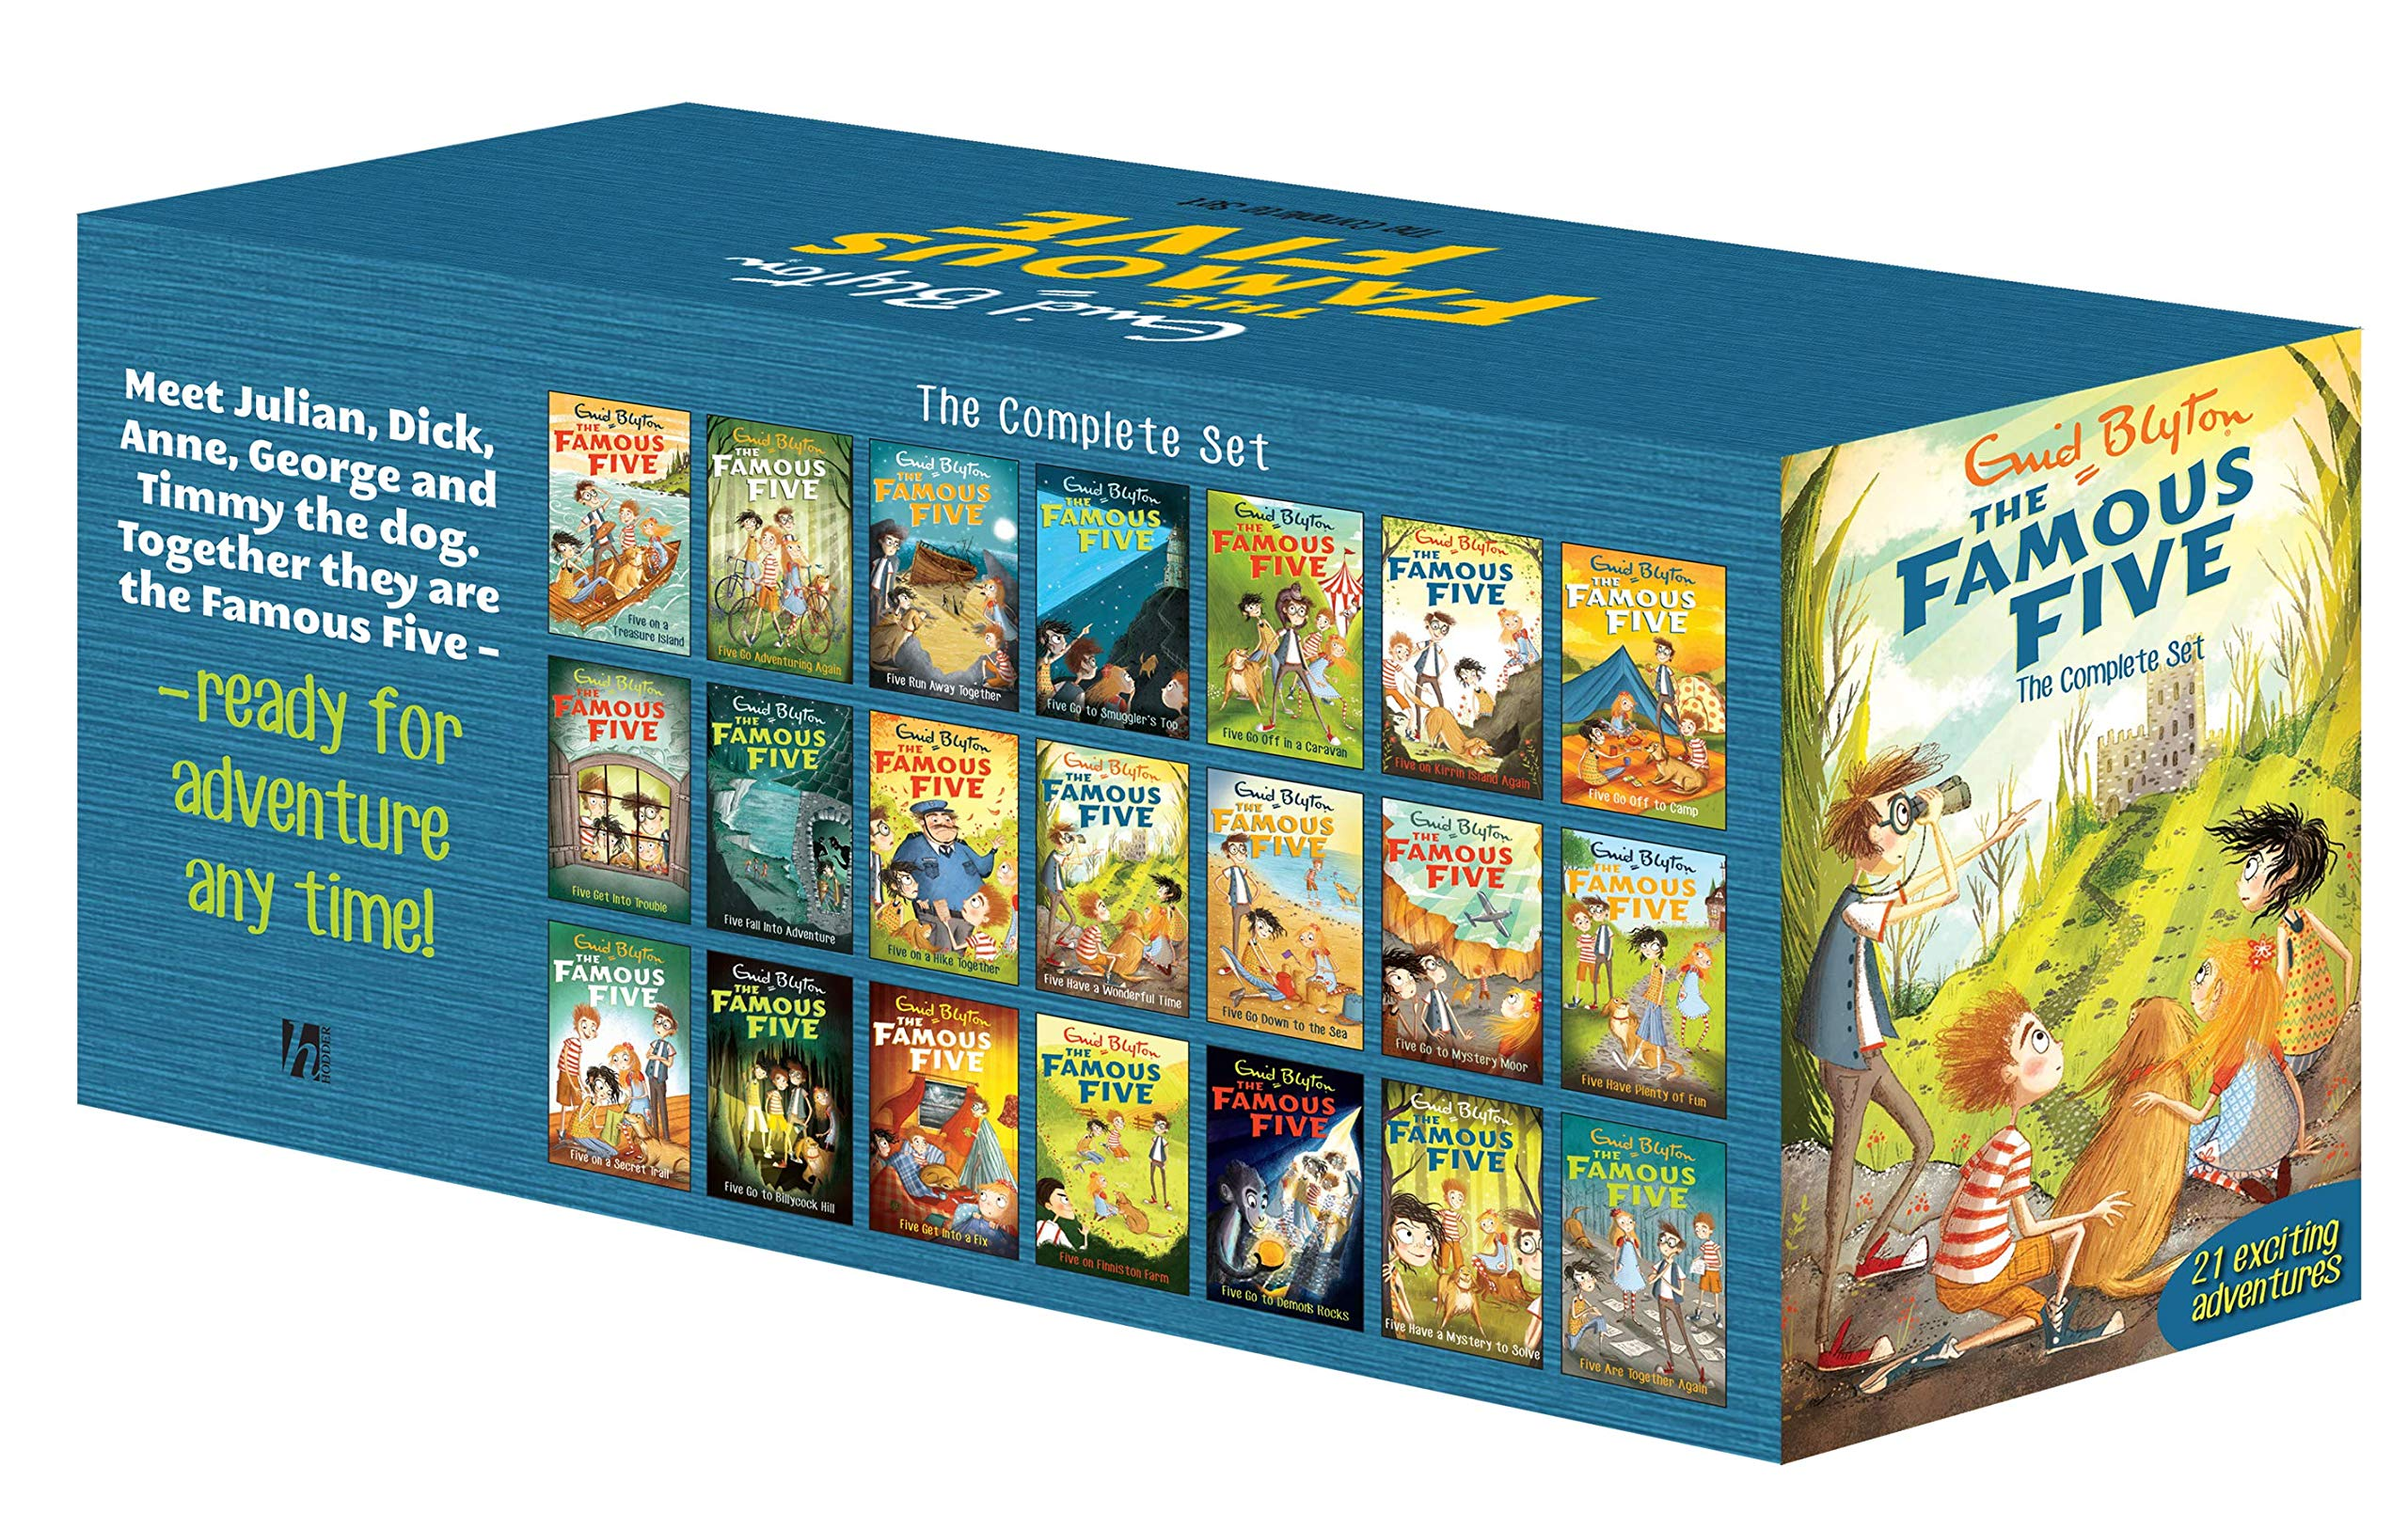 The Famous Five the Complete Set